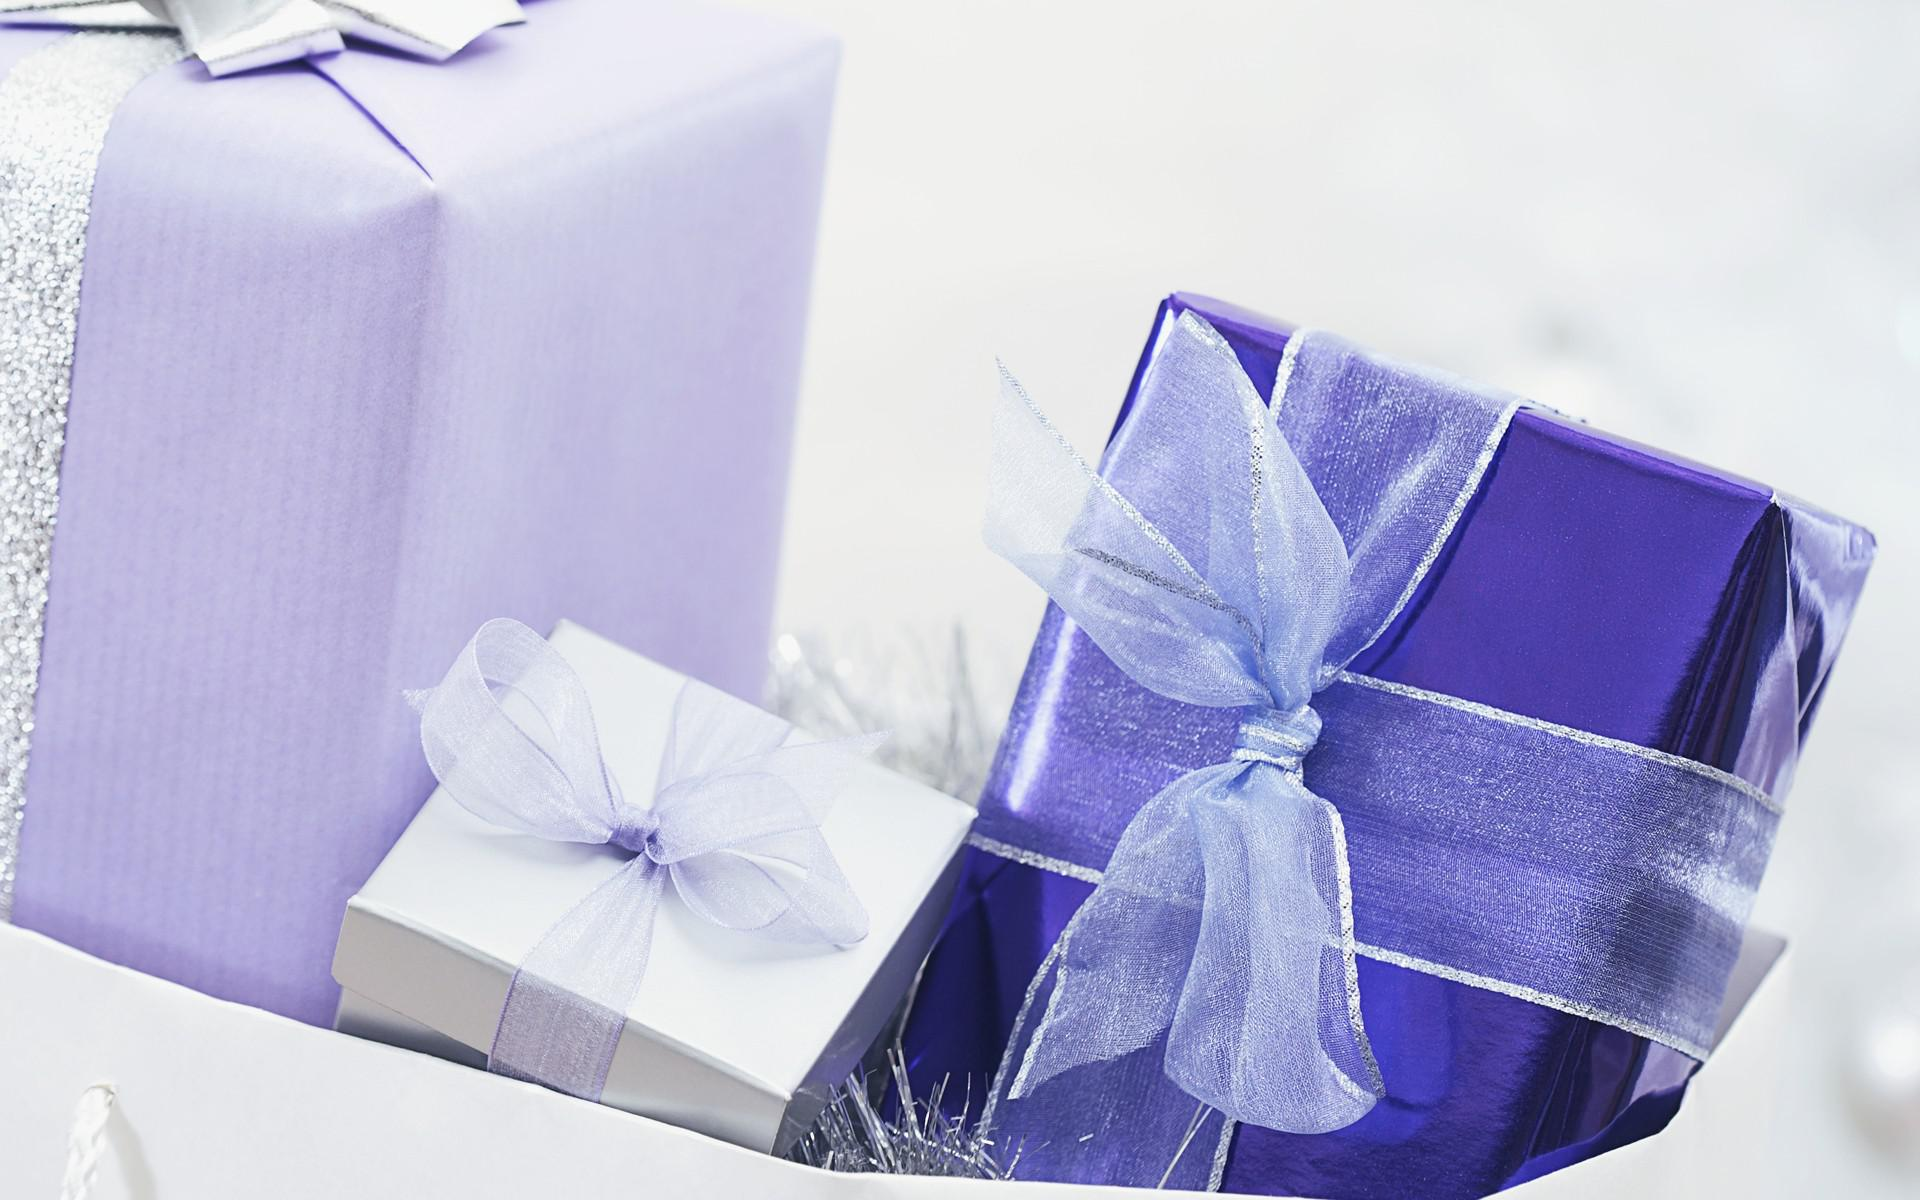 Chic Blue Gift - Chic Blue Gift